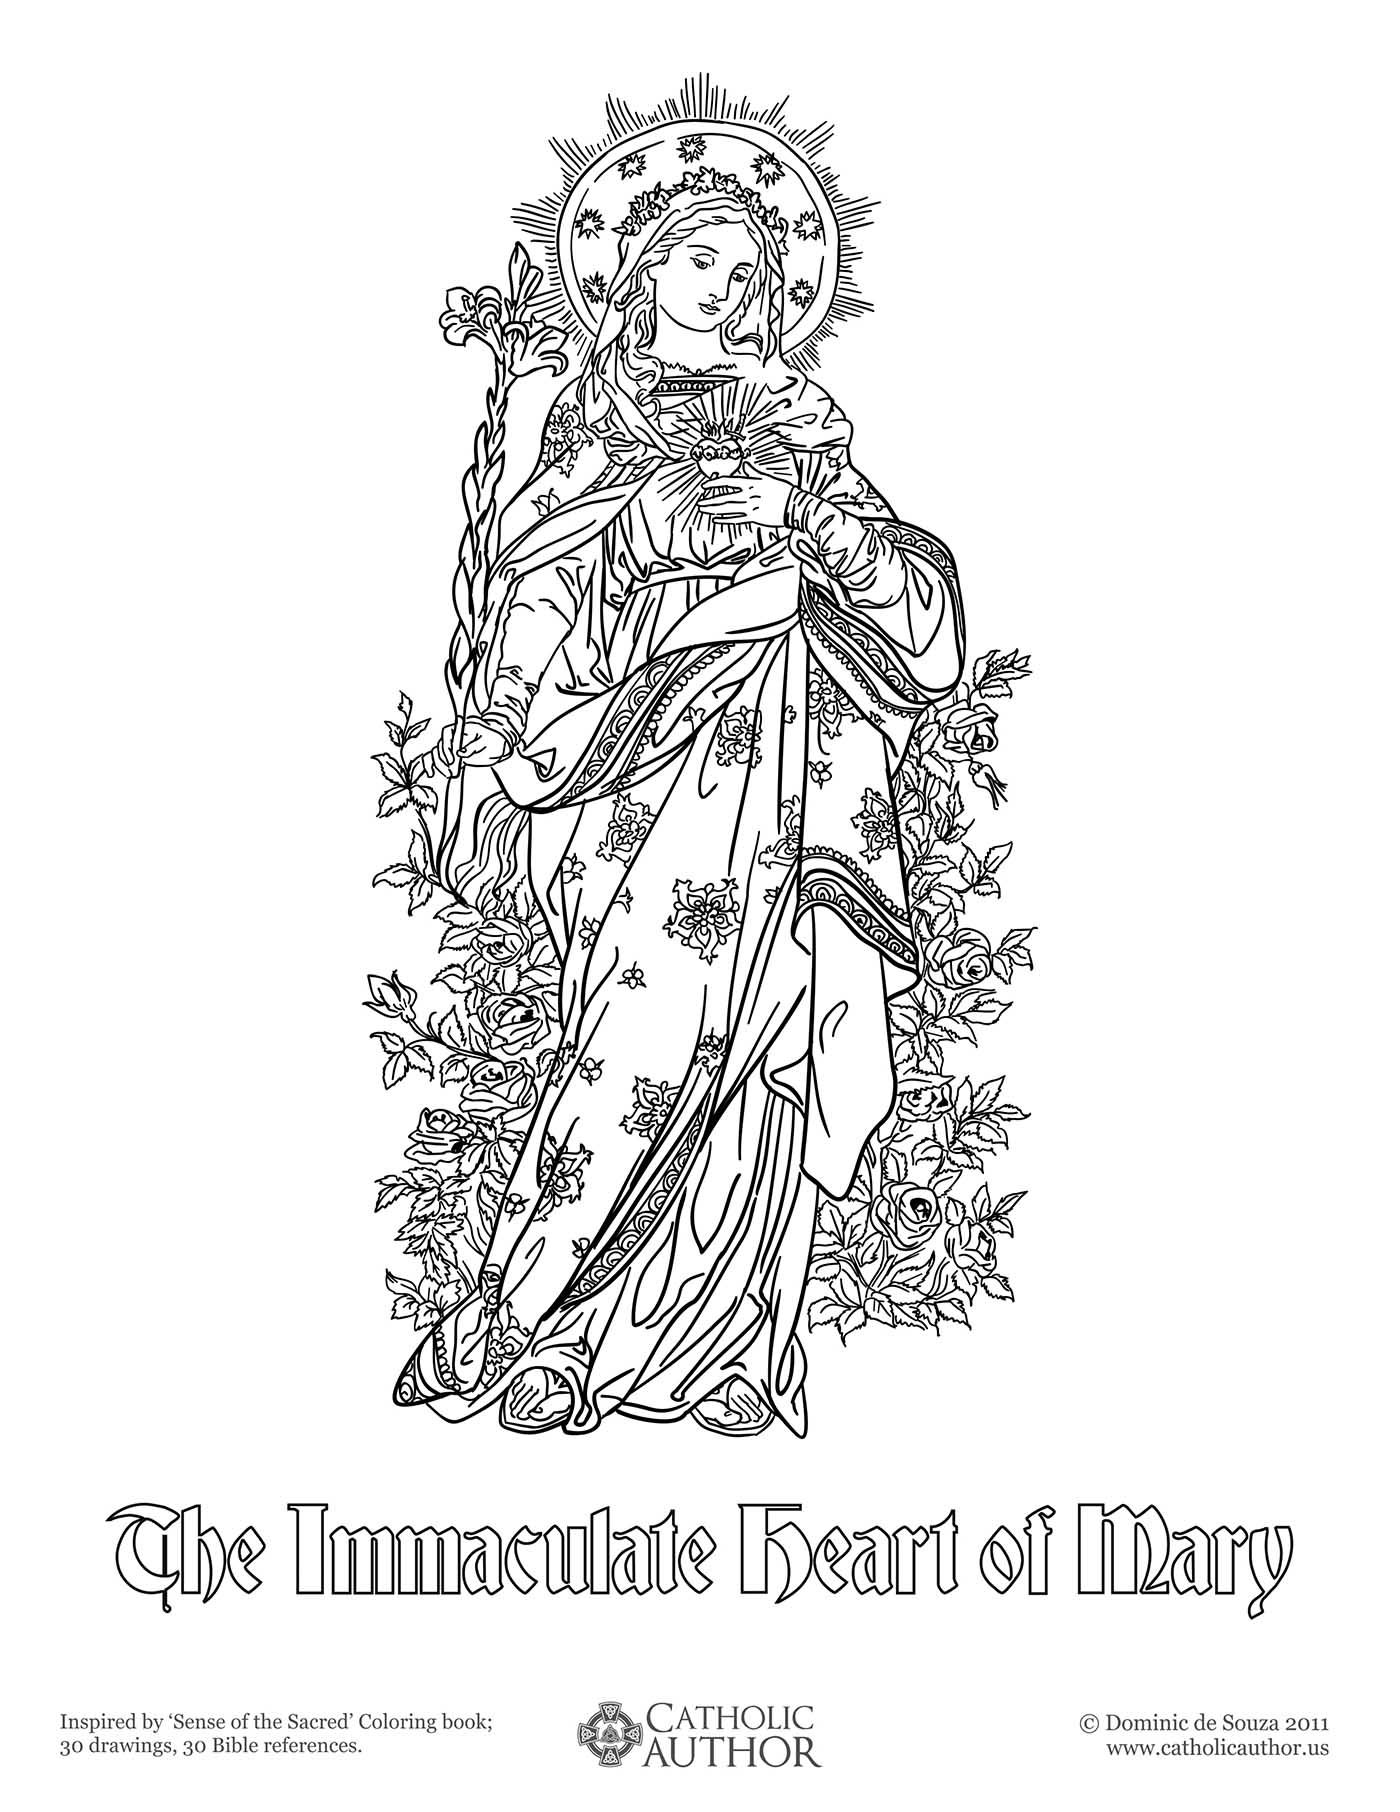 The Immaculate Heart of Mary - 12 Free Hand-Drawn Catholic Coloring ...